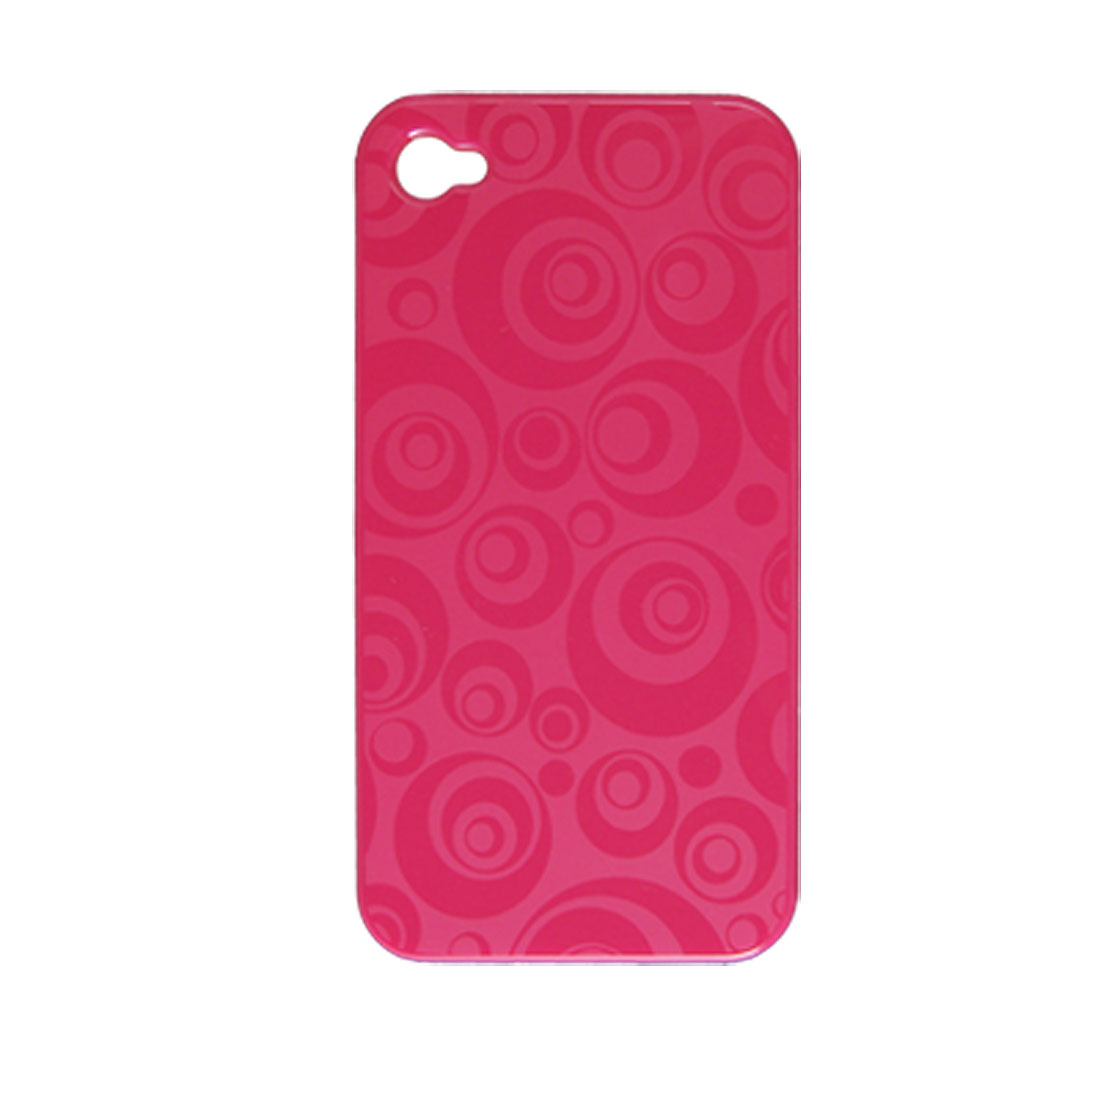 Hot Pink Circle Print Hard Plastic Protective Back Cover for iPhone 4